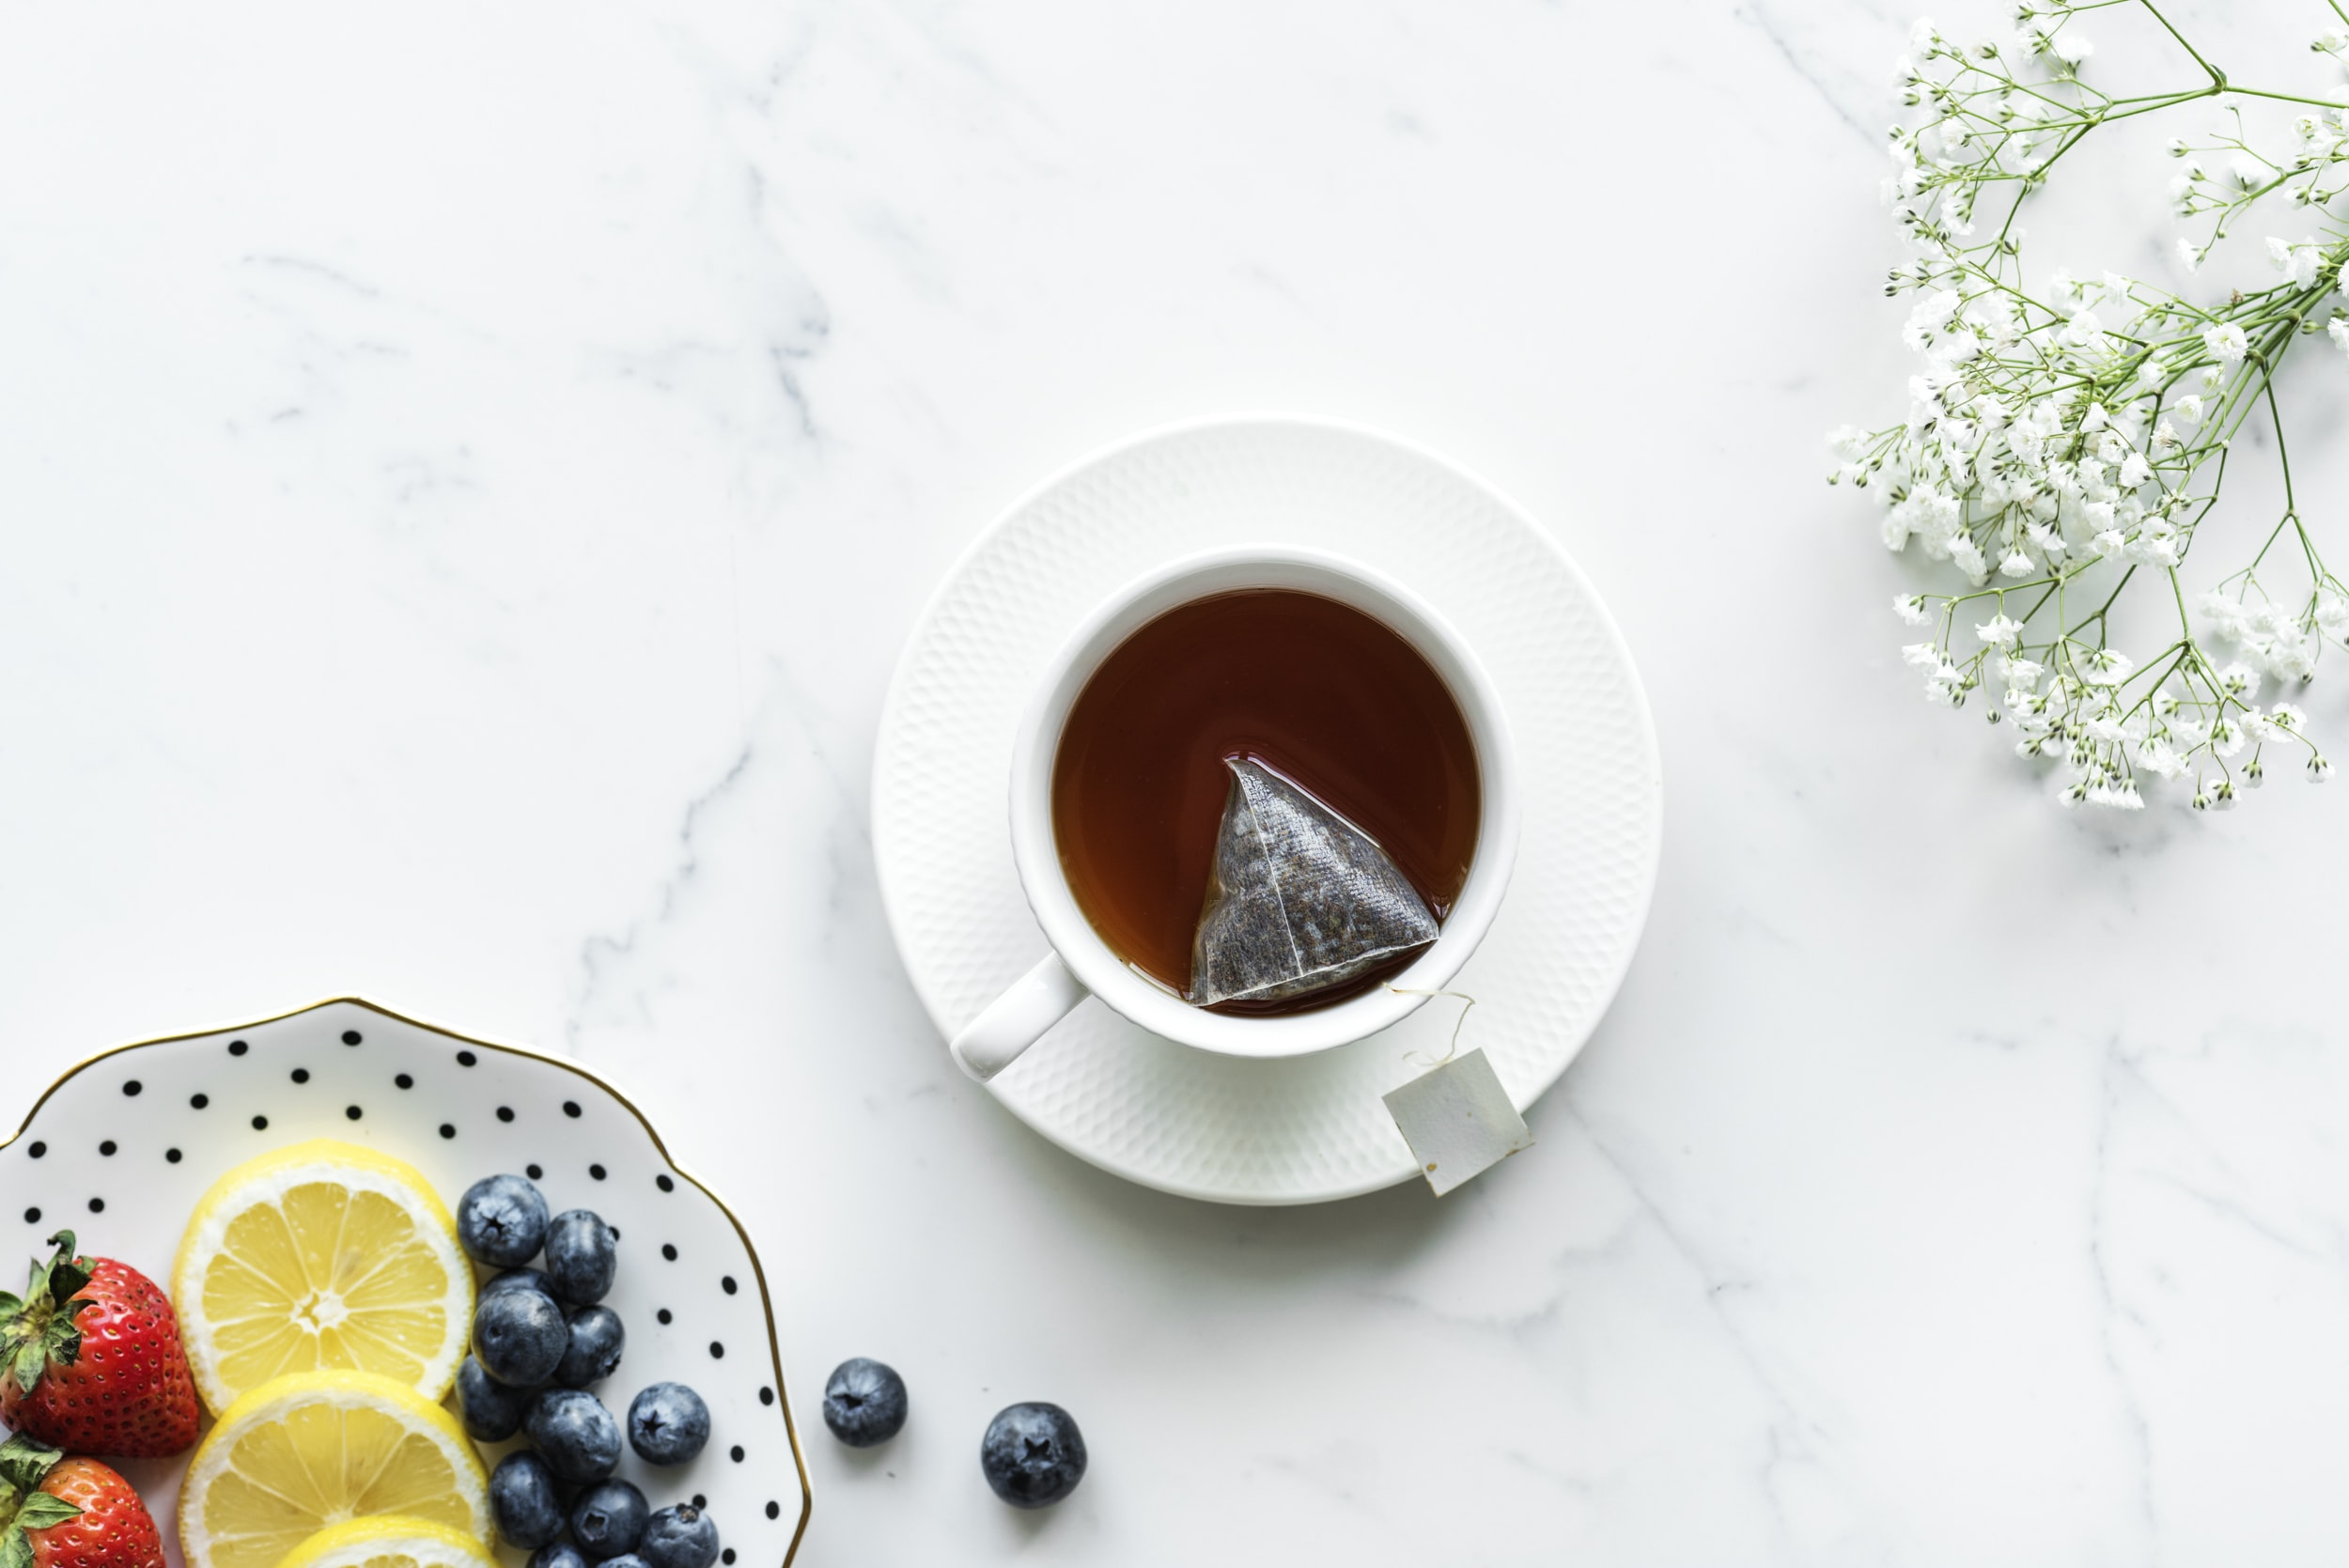 Tea Table Flatlay And Fruit Hd Photo By Rawpixel